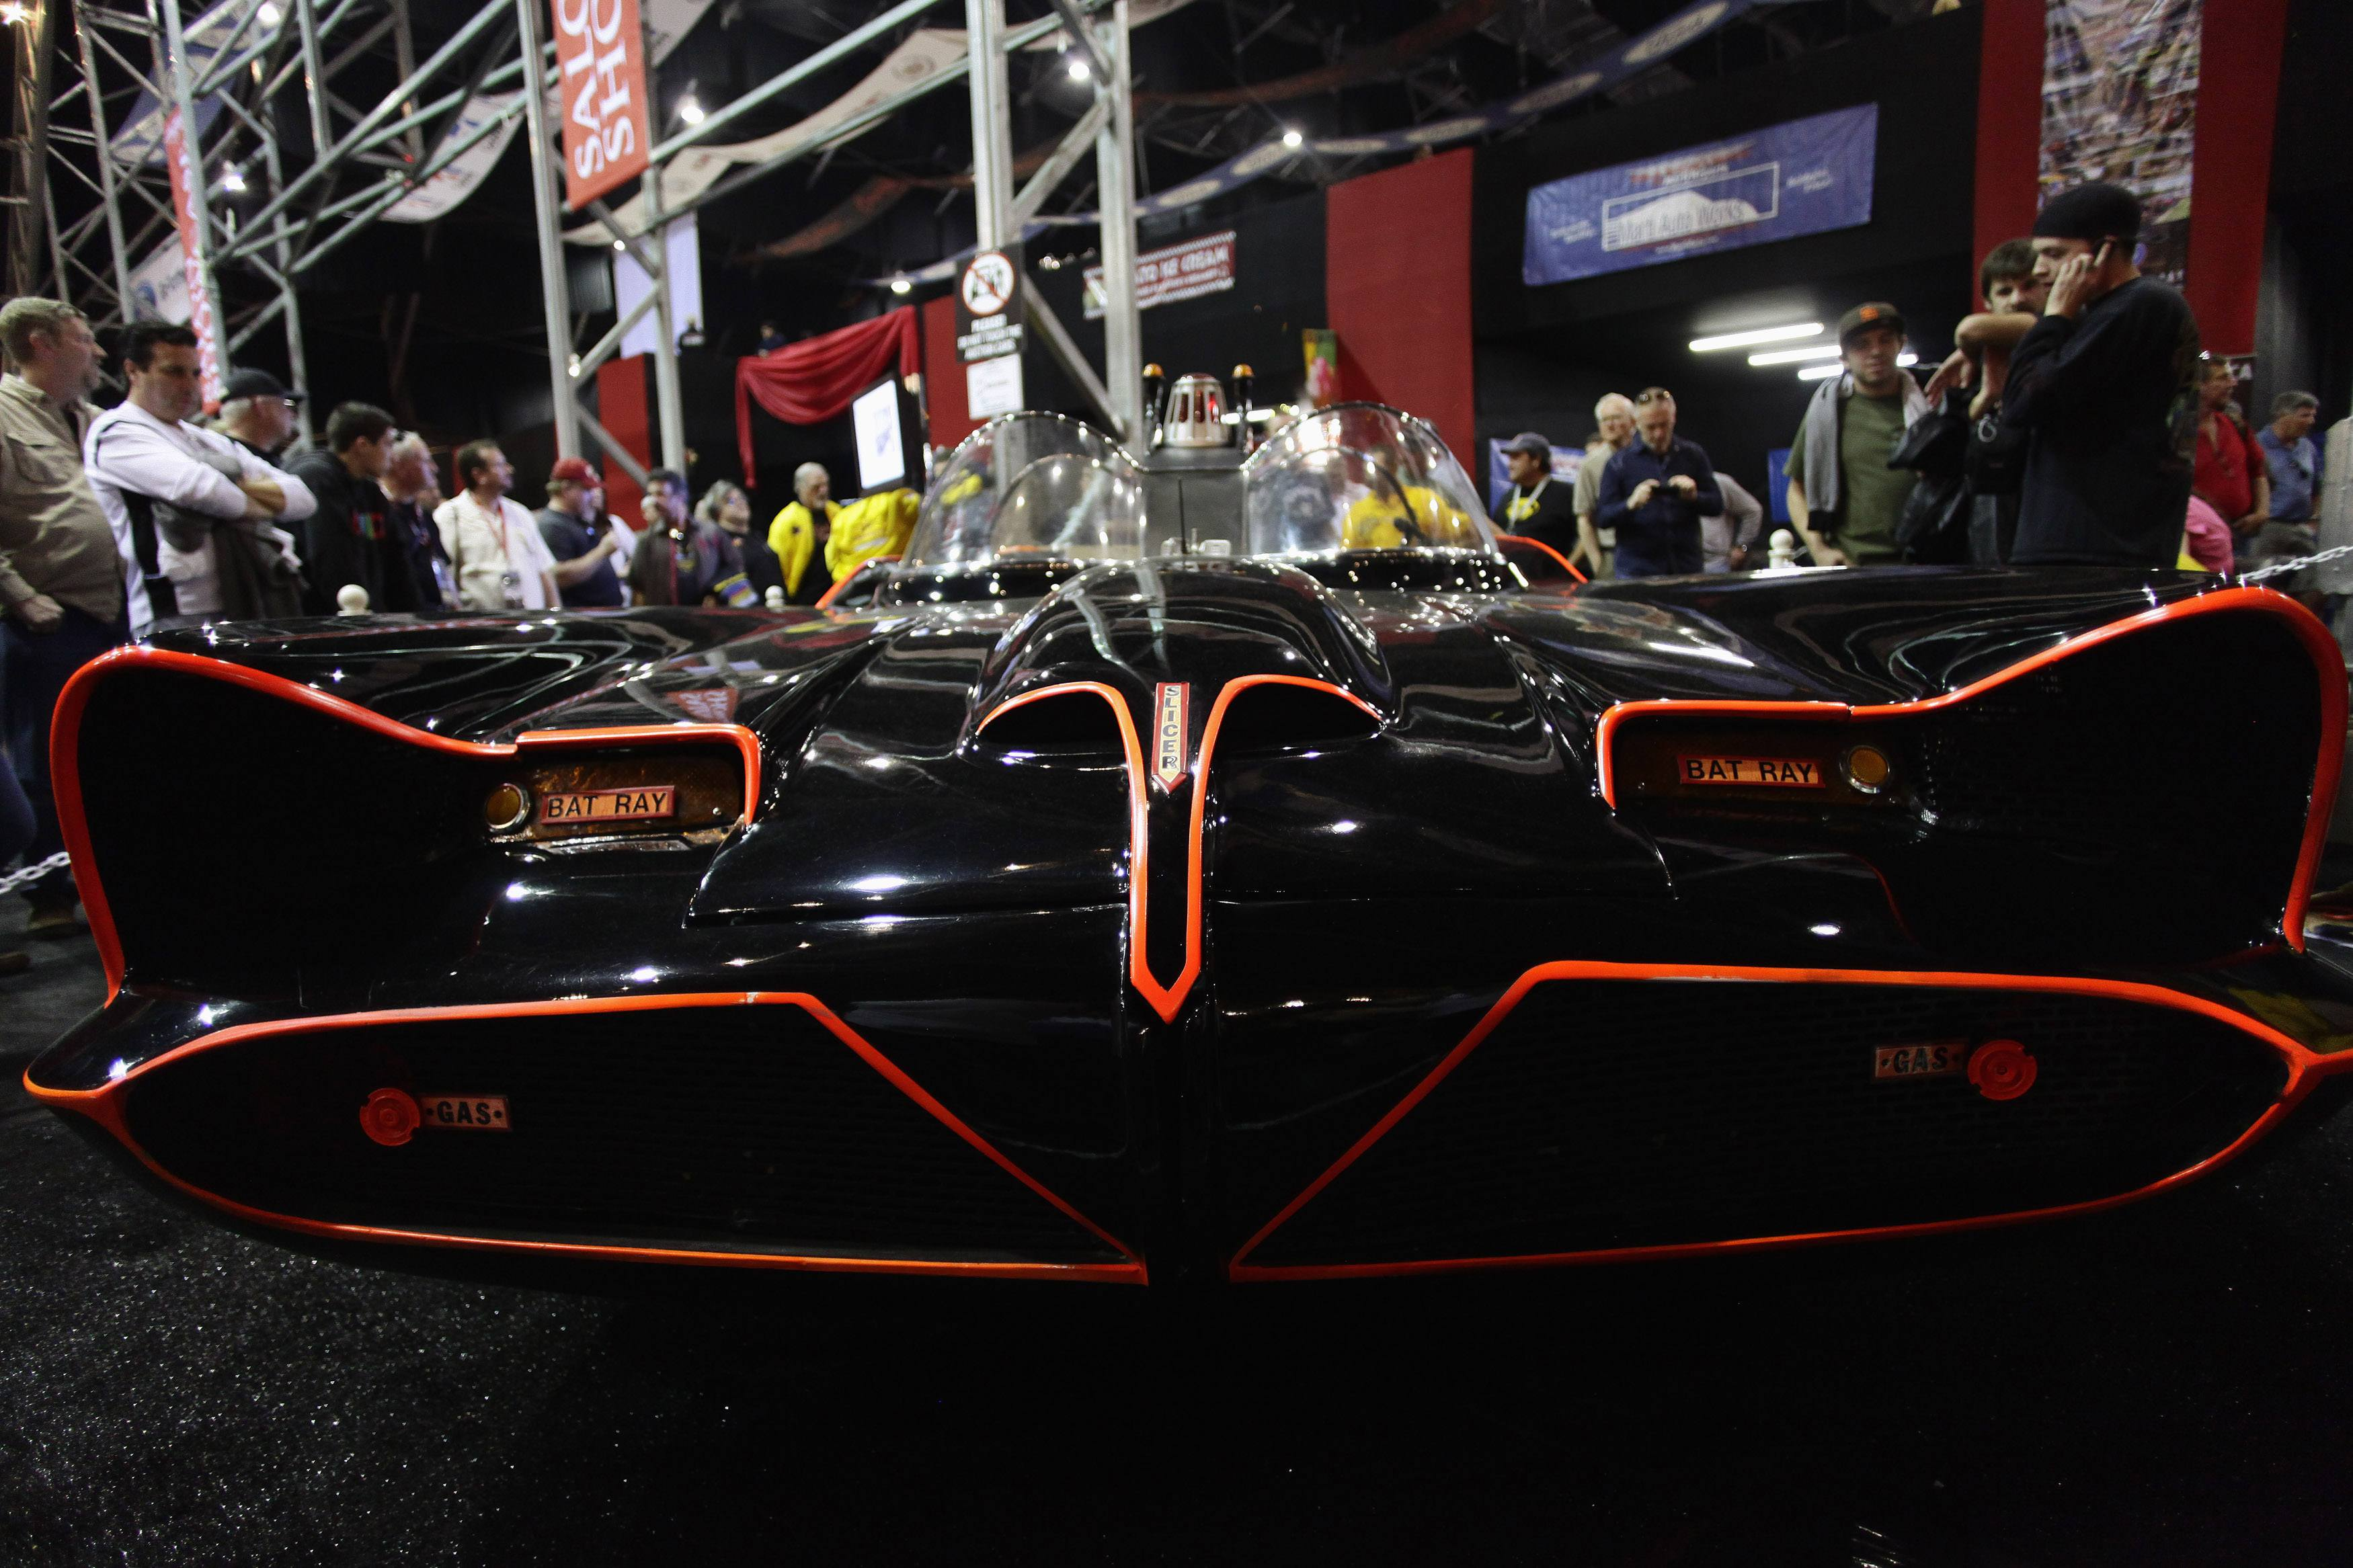 The original Batmobile is displayed during the Barrett-Jackson collectors car auction in Scottsdale, Arizona January 19, 2013. The vehicle was sold for $4,200,000, announced the auction company. REUTERS/Joshua Lott (UNITED STATES - Tags: ENTERTAINMENT TRANSPORT BUSINESS SOCIETY)